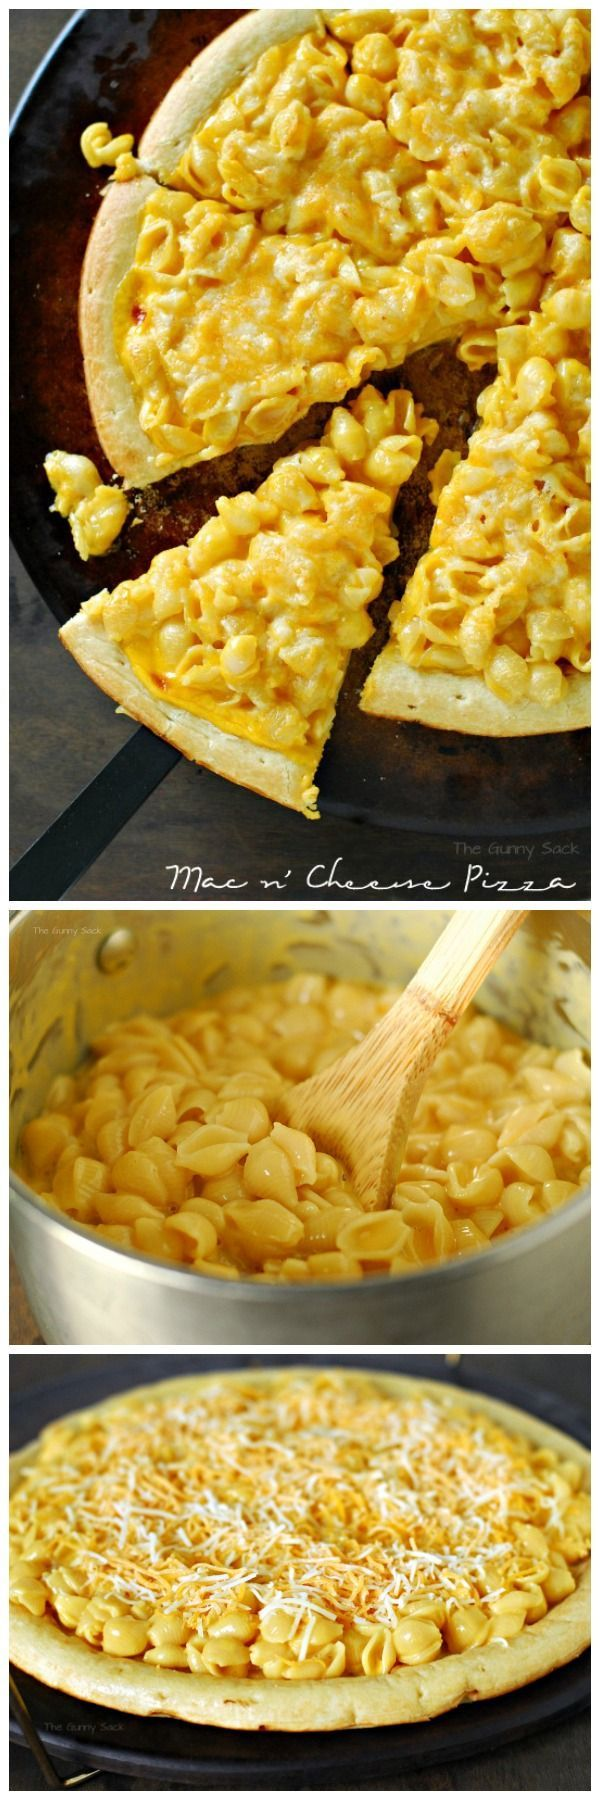 Take macaroni and cheese to the next level with Mac n' Cheese Pizza... Add garlic to the base :)